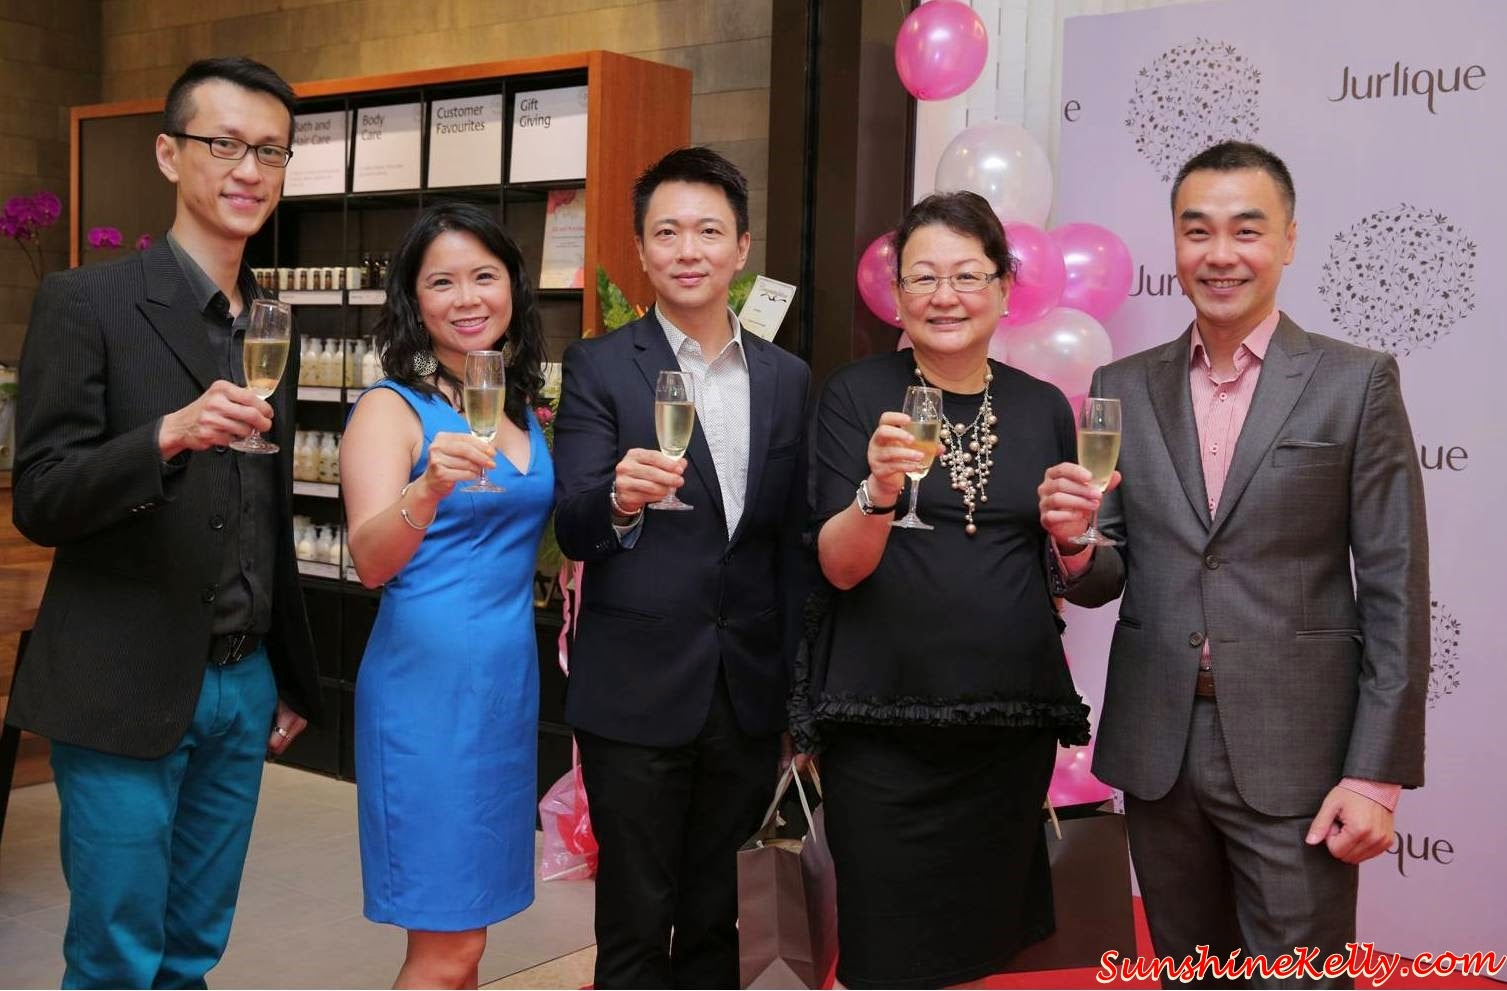 Jurlique Concept Store in Malaysia, Beauty Hall, Pavilion KL, jurlique 8th concept store opening ceremony